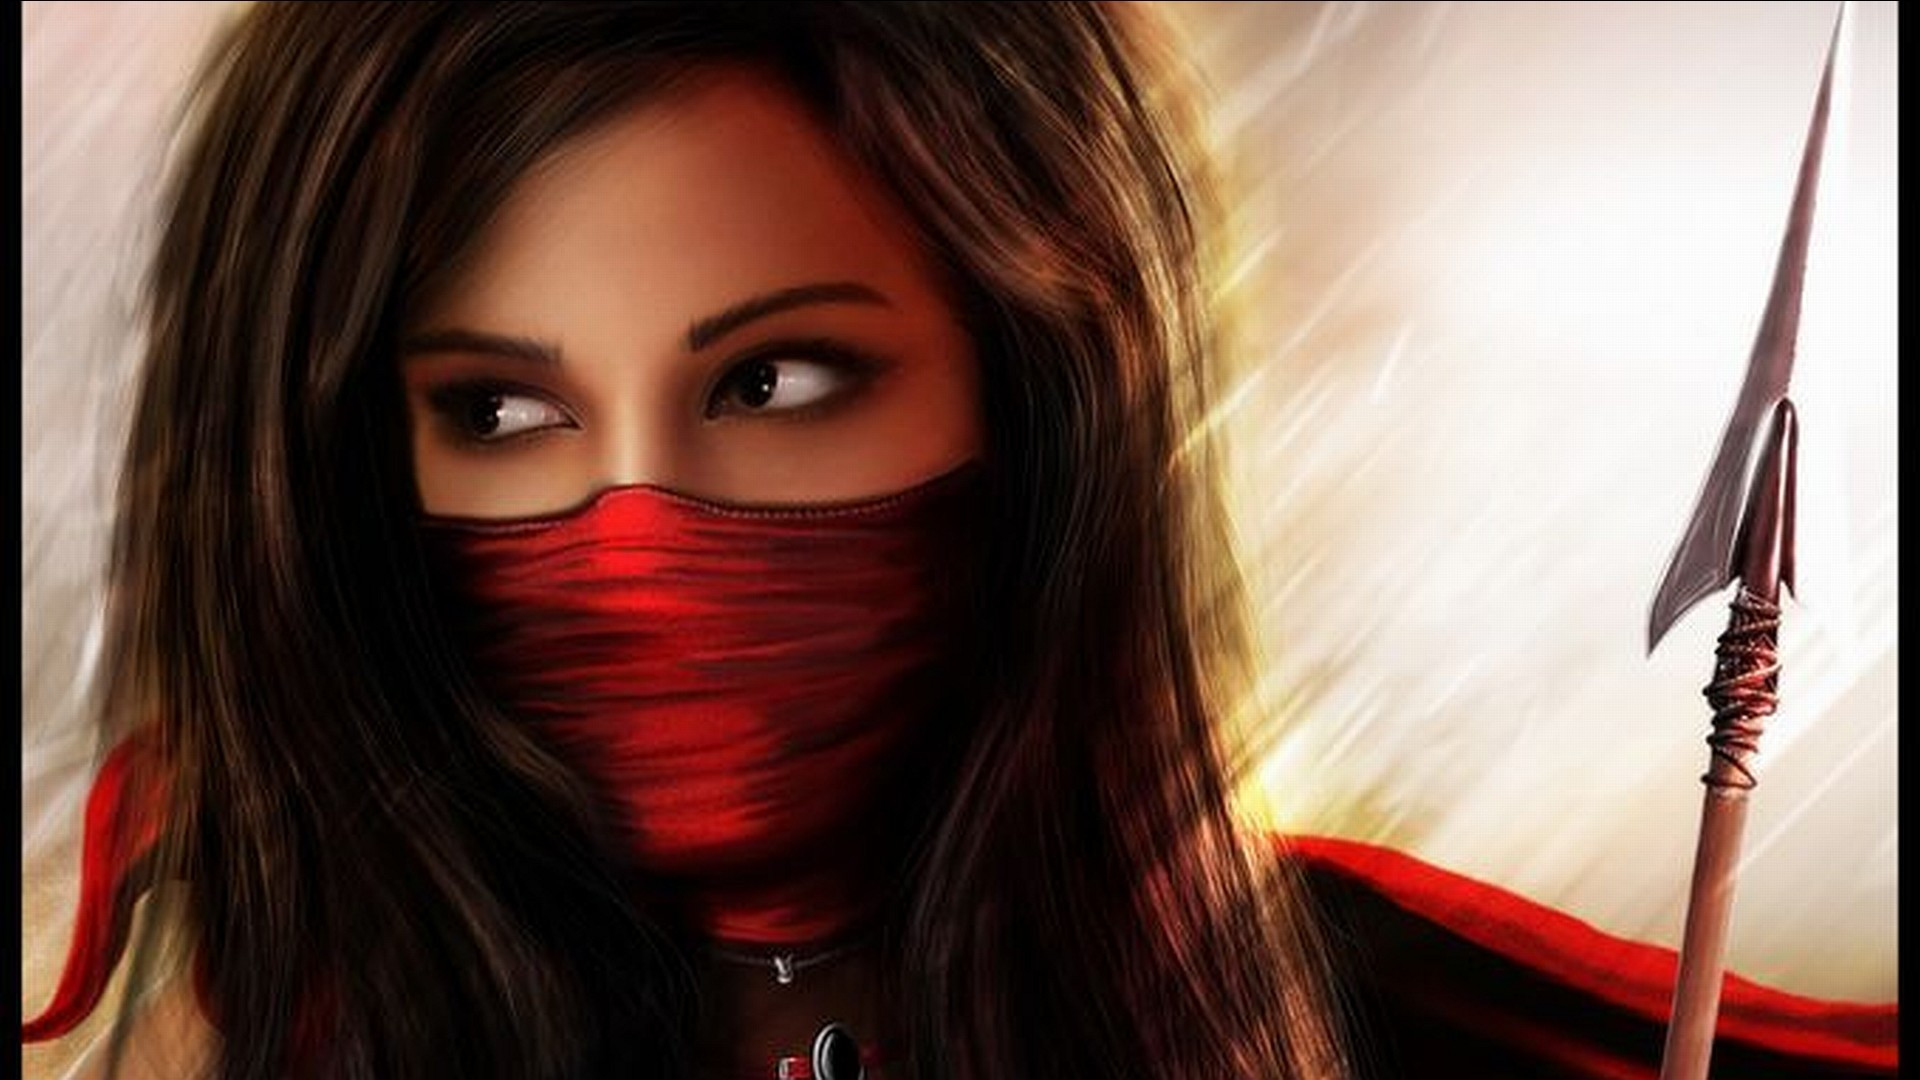 manipulations cg digital art art fantasy warriors spear weapons brunettes  face mask eyes jewelry light backlit scarf maiden red colors women females  girls …